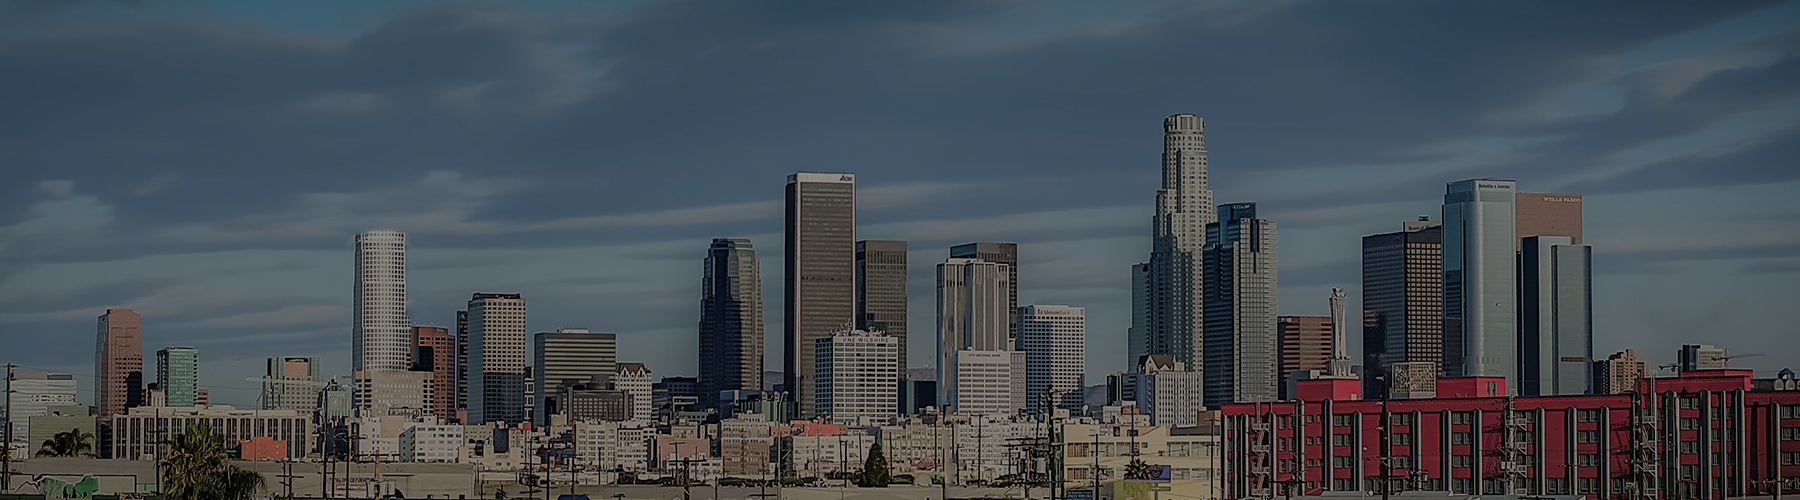 The Los Angeles downtown skyline as seen from the Arts District.